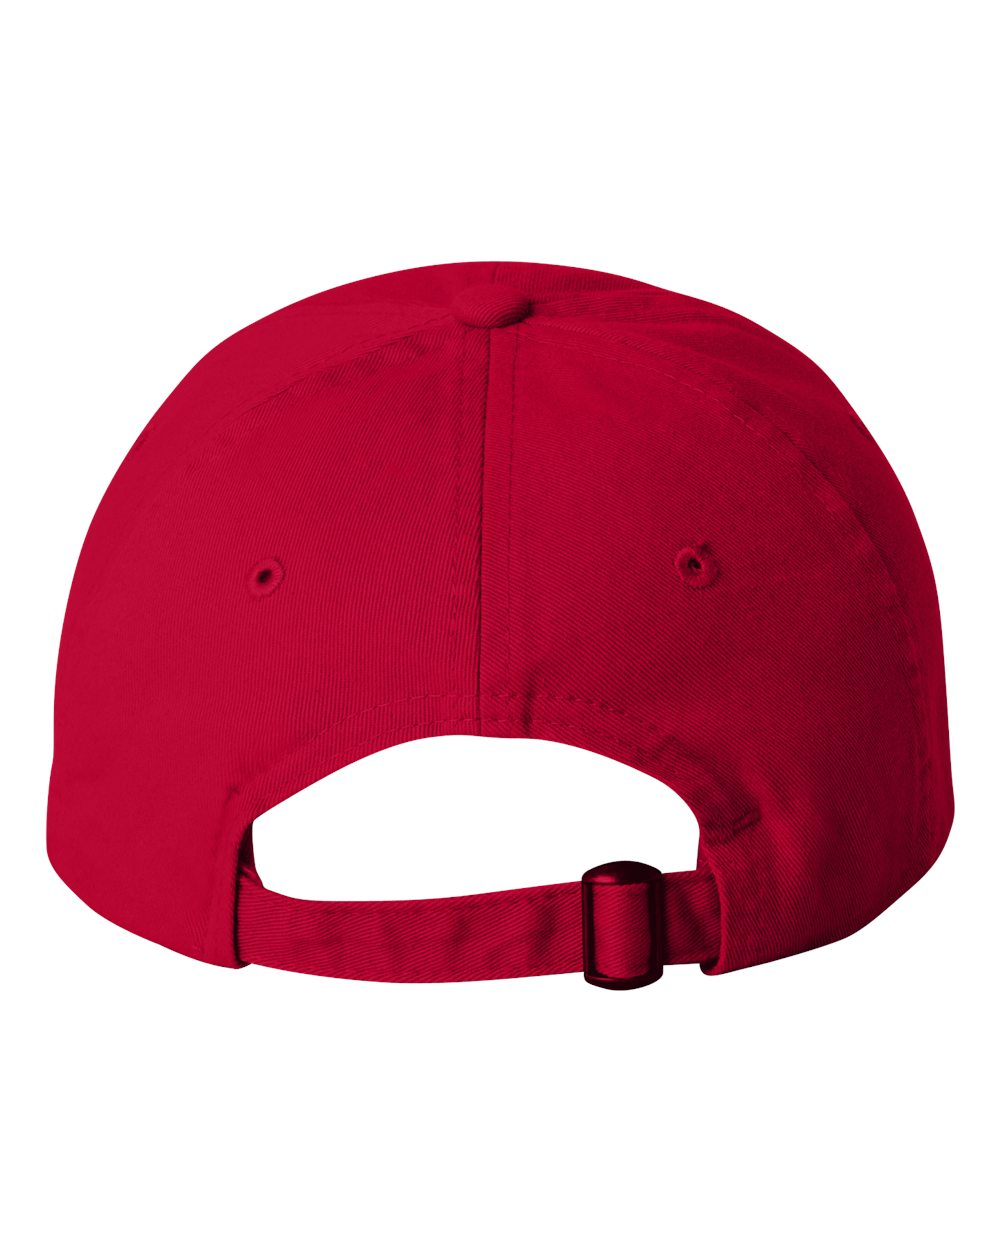 bca9289f13dfc Playboy Bunny Unstructured Baseball Dad Hat Cap New - Red w  Black ...